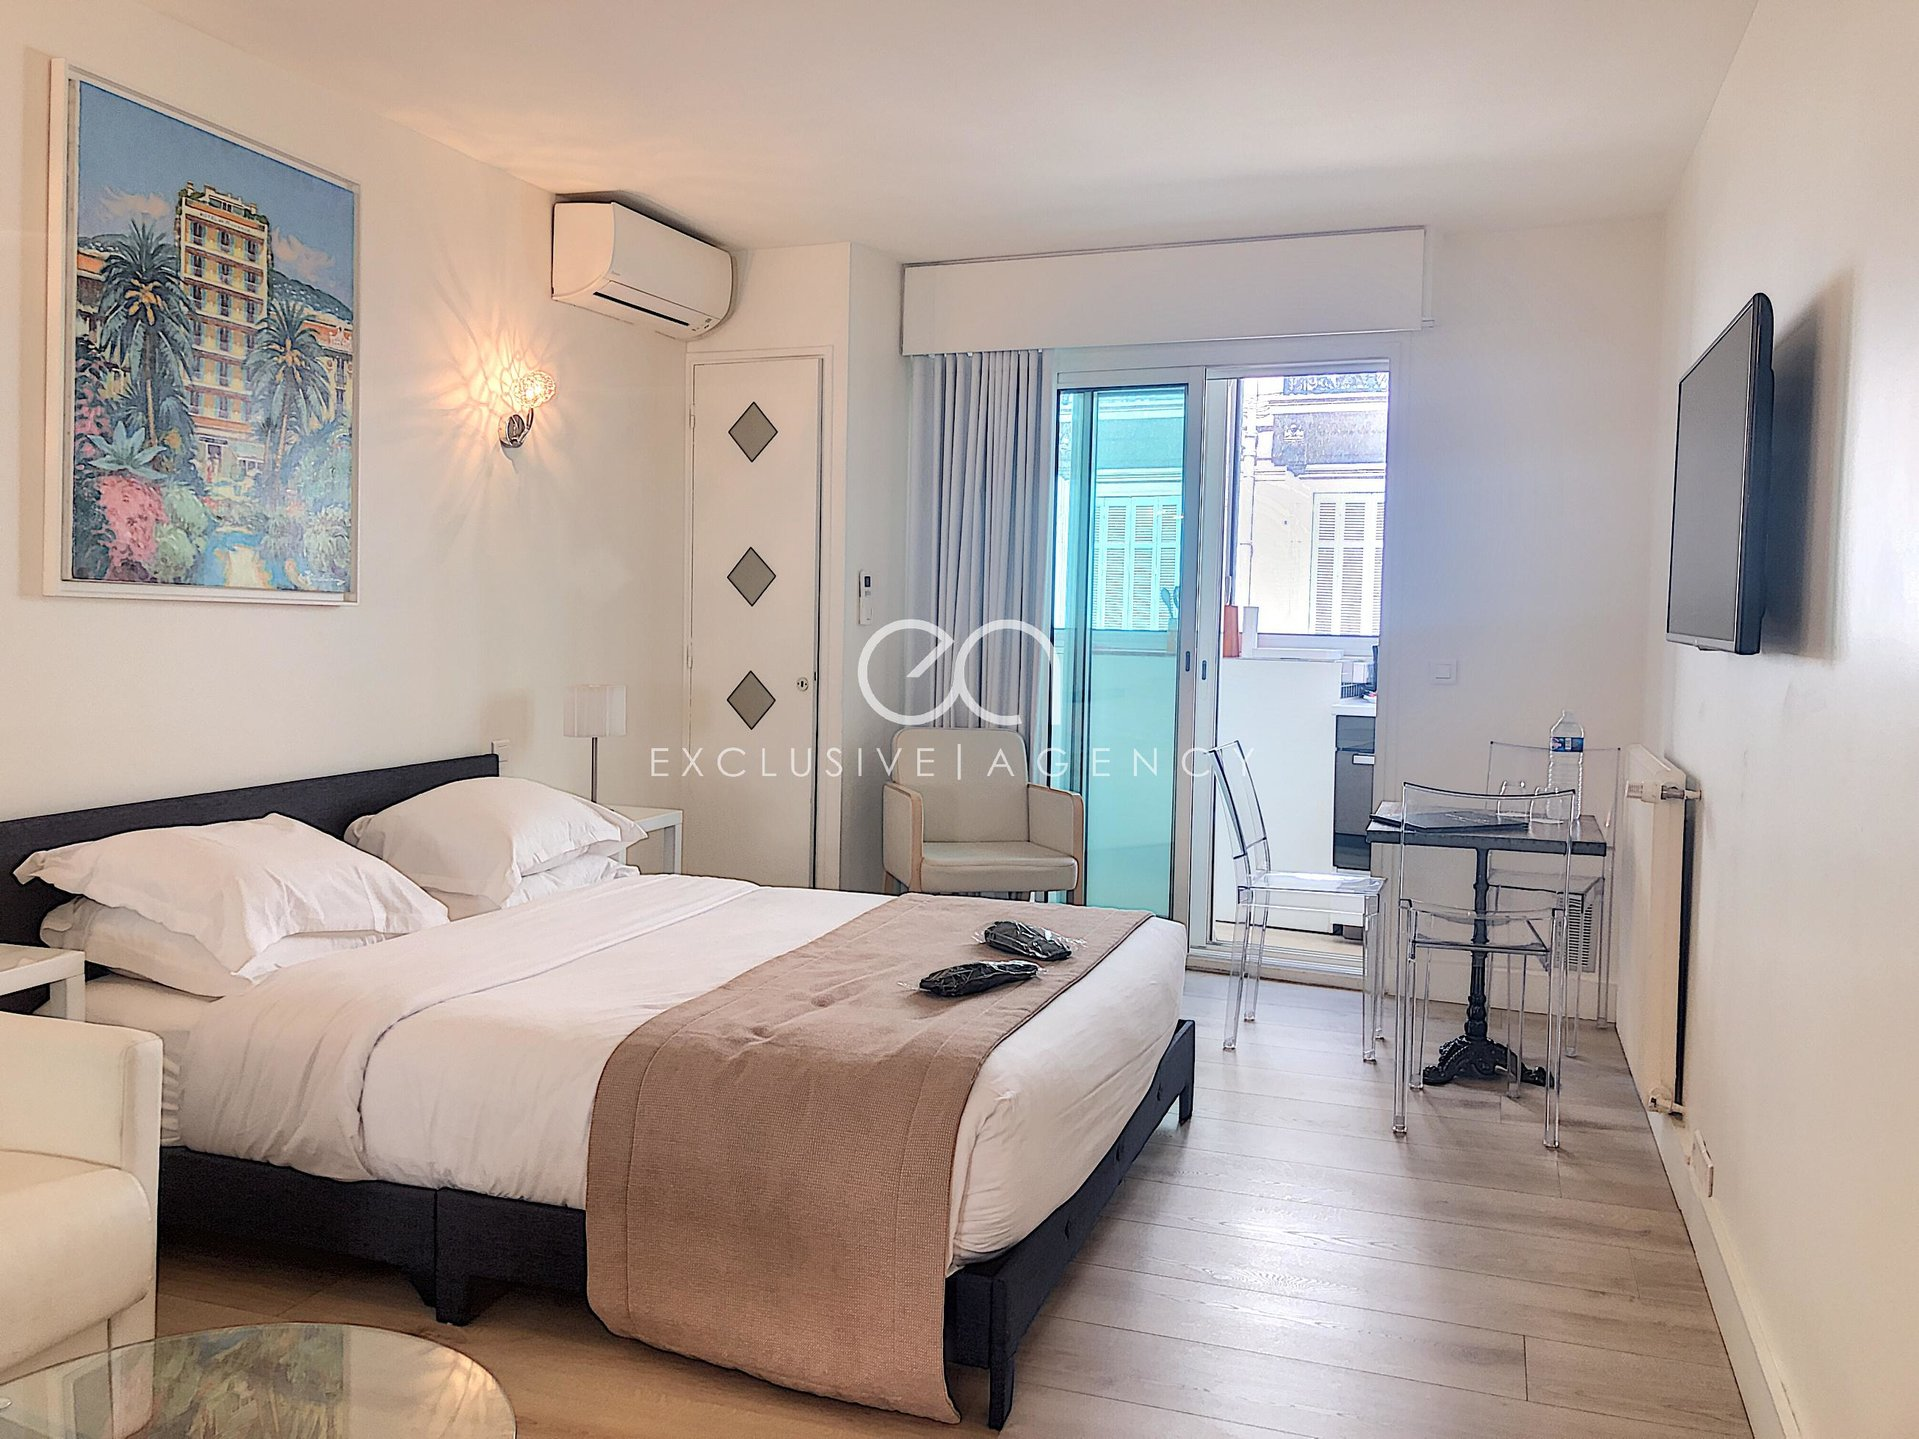 For sale Cannes near Grand Hotel and rue d'Antibes 26sqm studio